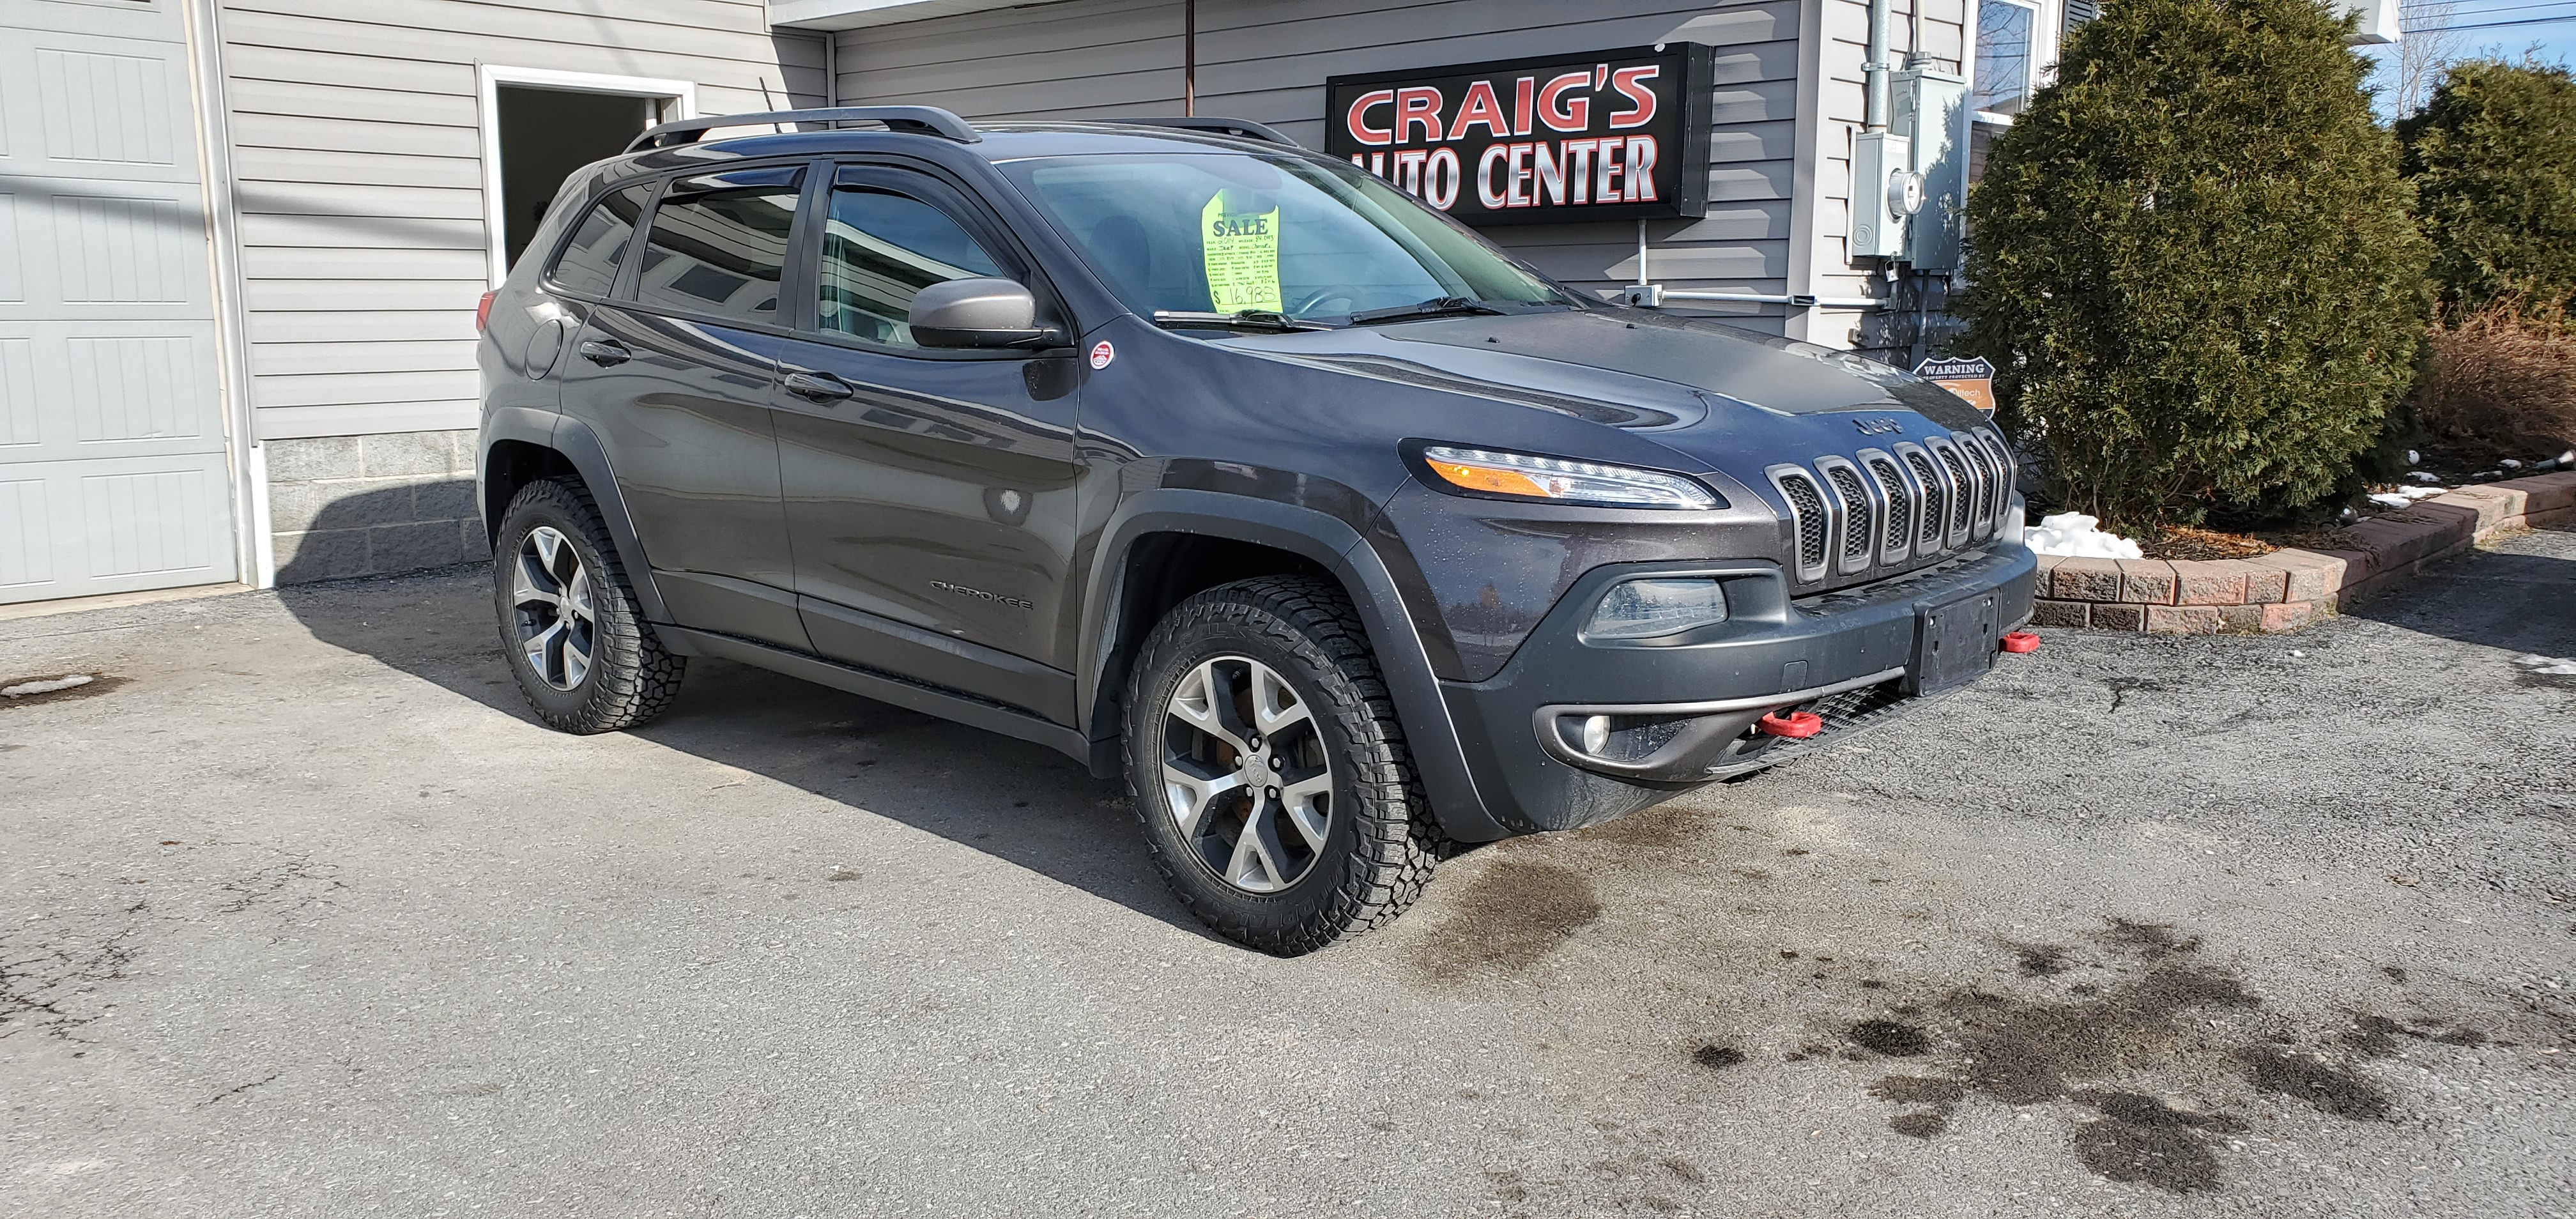 2014 Jeep Trailhawk